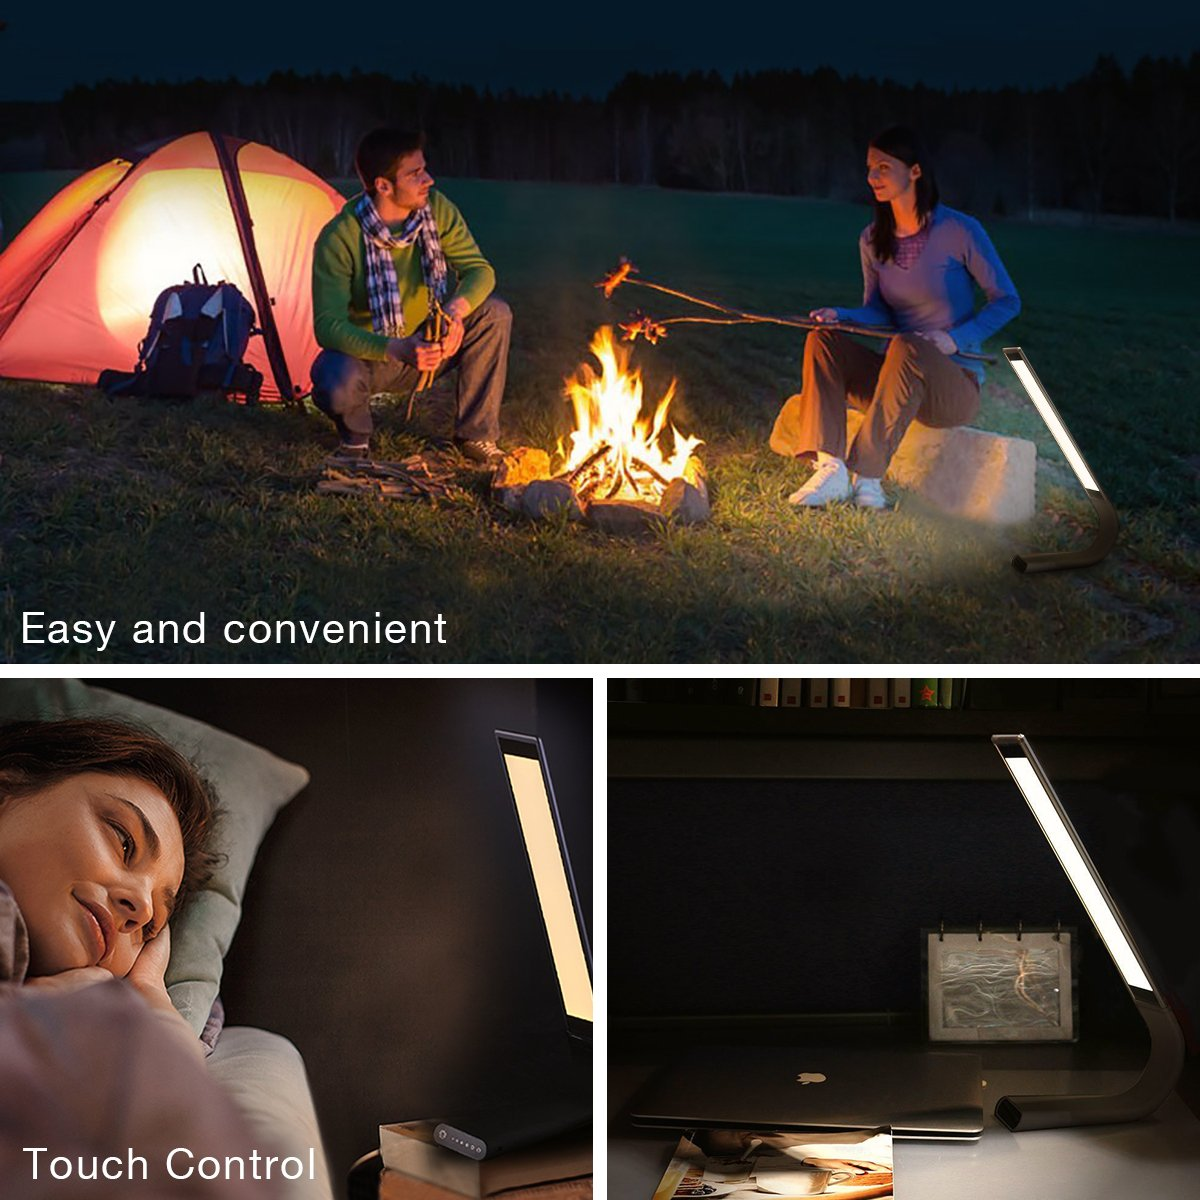 Poweradd Glowing Eye-caring Touch Sensitive LED Desk Lamp, 3 Light Modes(3100K 4200K 5400K) with 6 Dimmable Levels Sensor Control Night Light, 360 Degree Foldable Table Light - Black